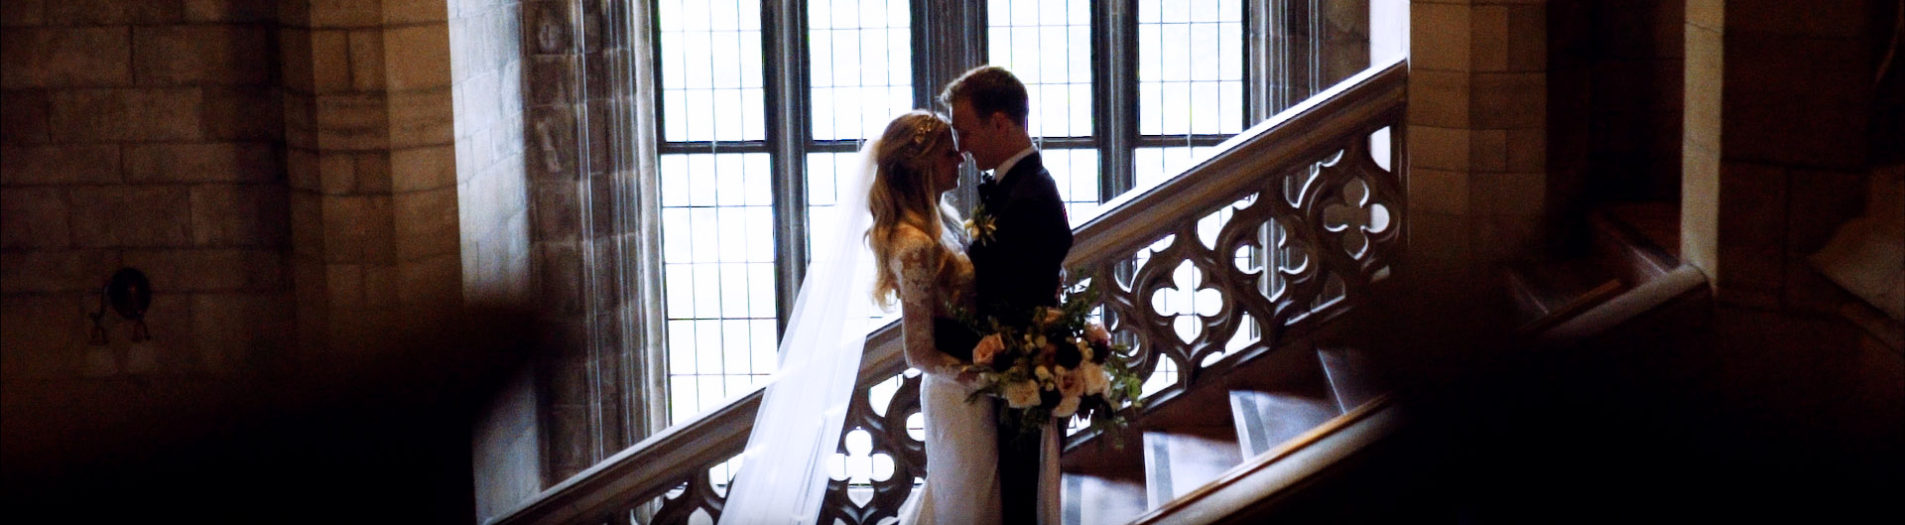 Toronto Wedding Cinematography | The Omni King Edward Hotel | St. Michael's Cathedral Basilica | Erica + Ryan